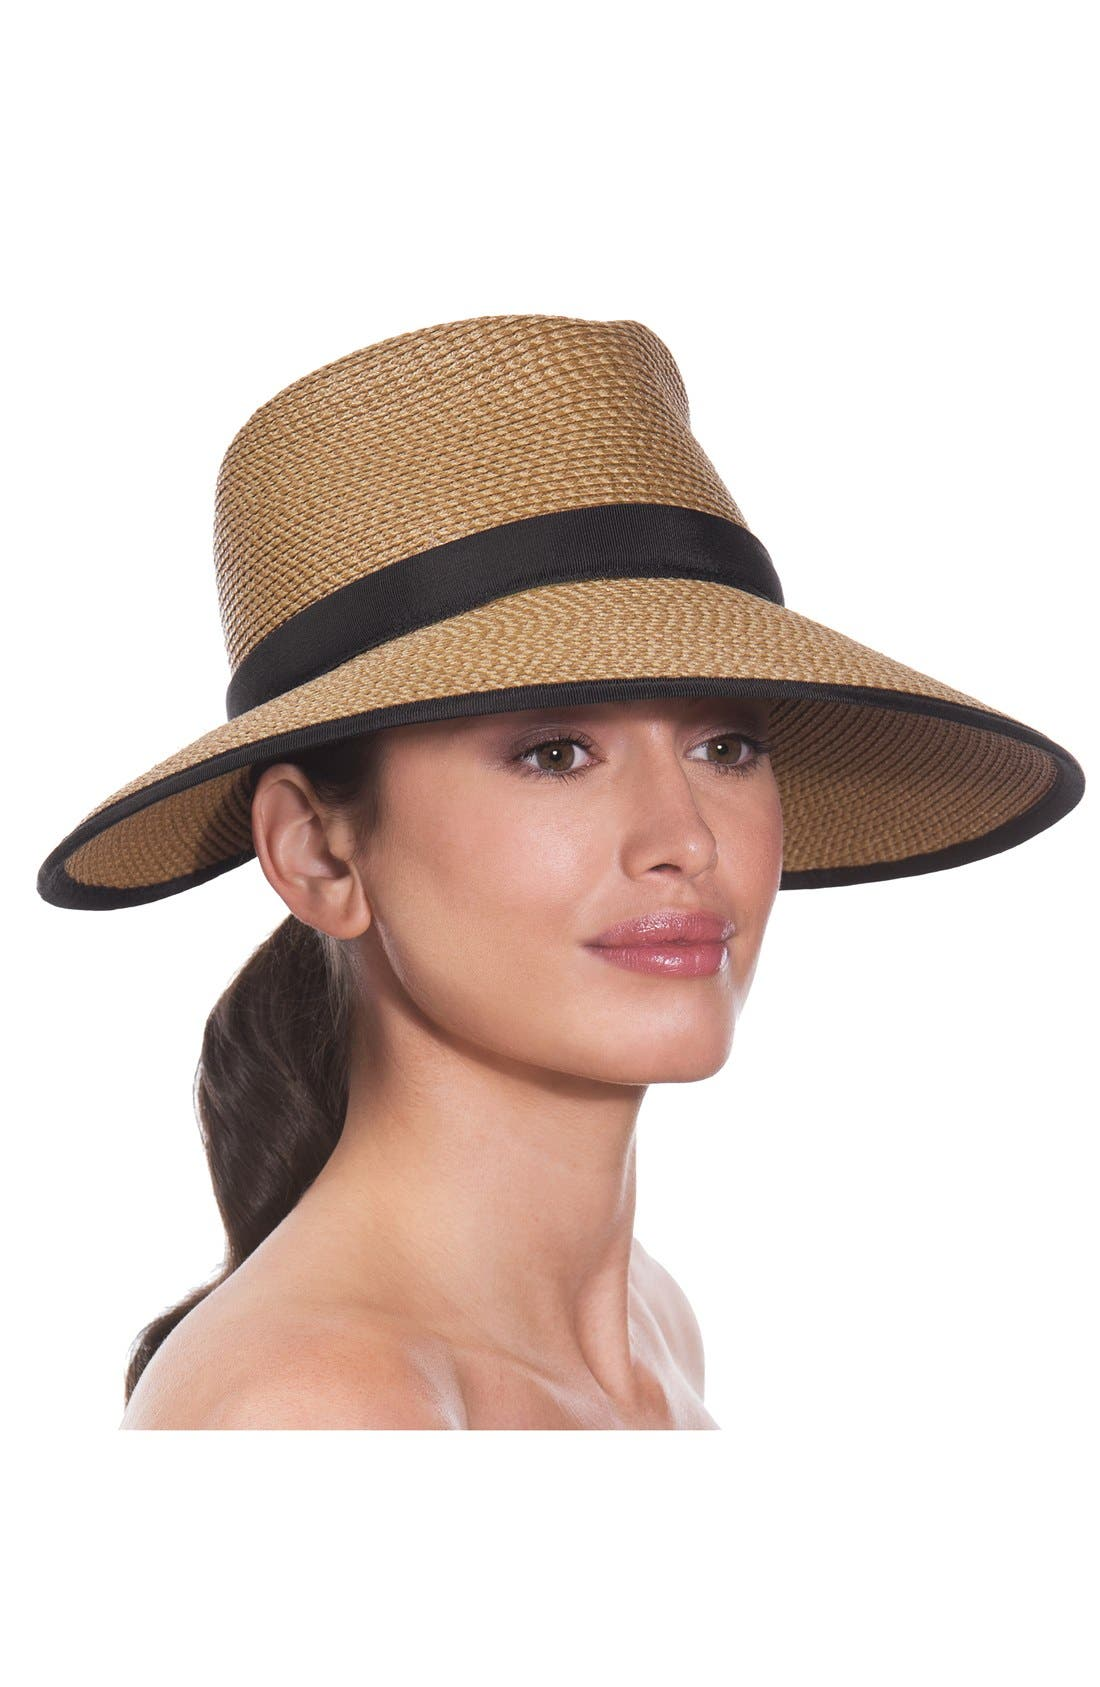 ERIC JAVITS, 'Sun Crest' Packable Hybrid Fedora Visor, Alternate thumbnail 2, color, NATURAL/ BLACK